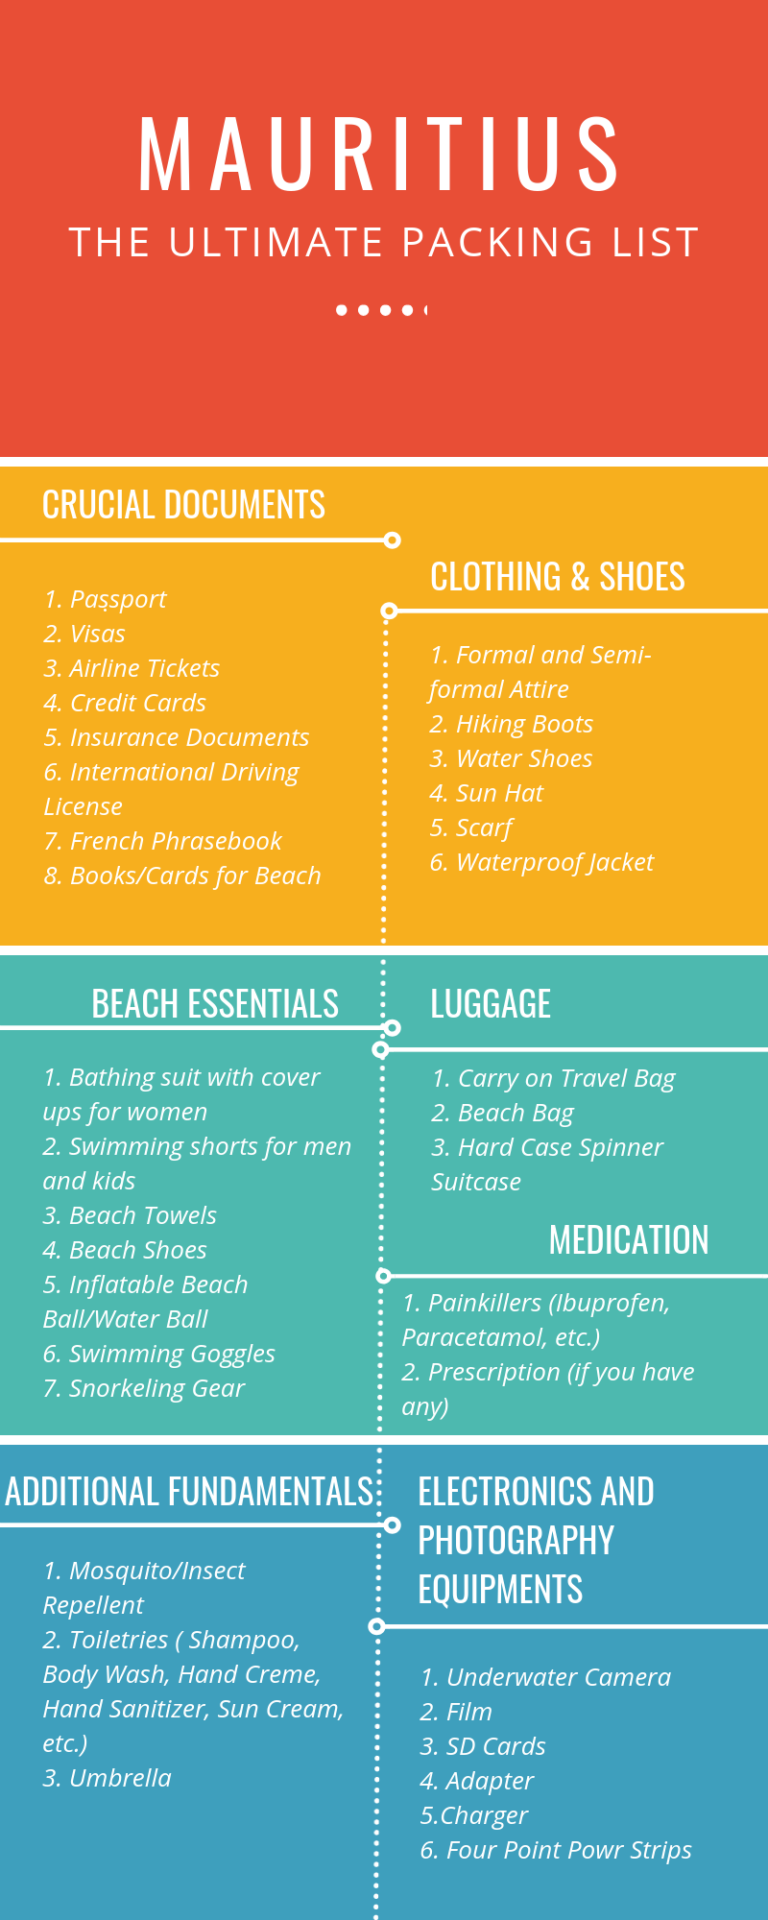 The Ultimate Mauritius Packing List | TravelTresure #ultimatepackinglist